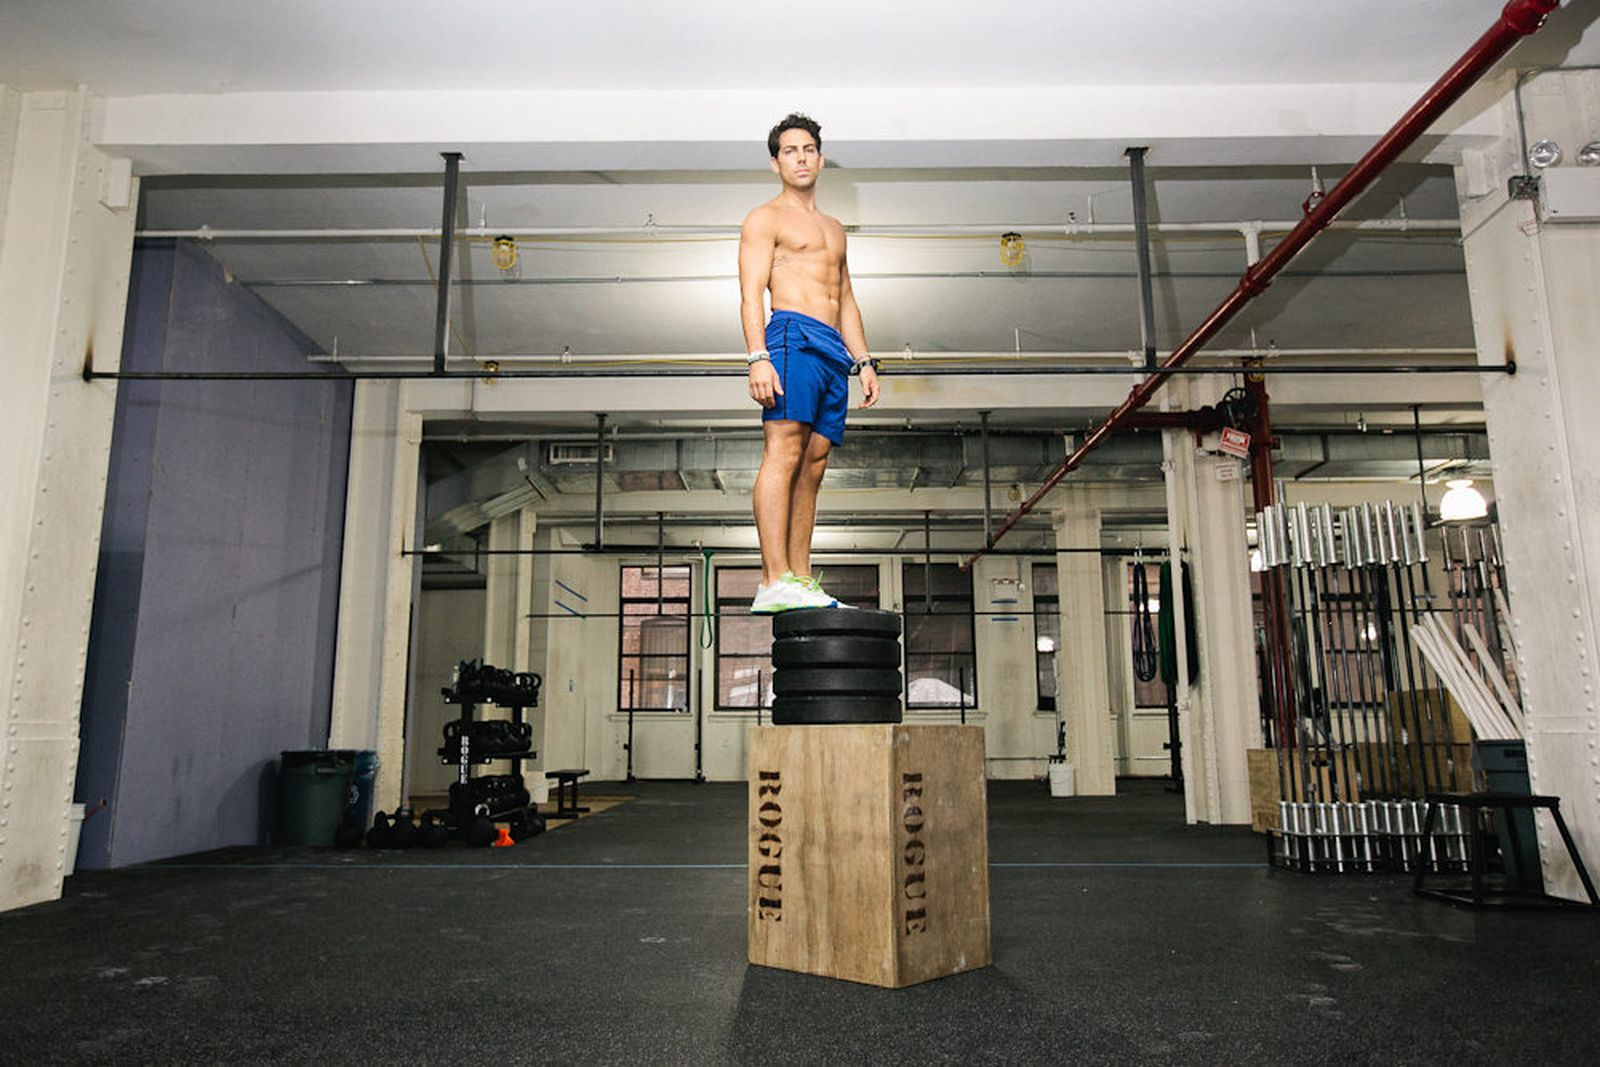 Hottest Trainer Contestant 8 Will Lanier Racked Ny